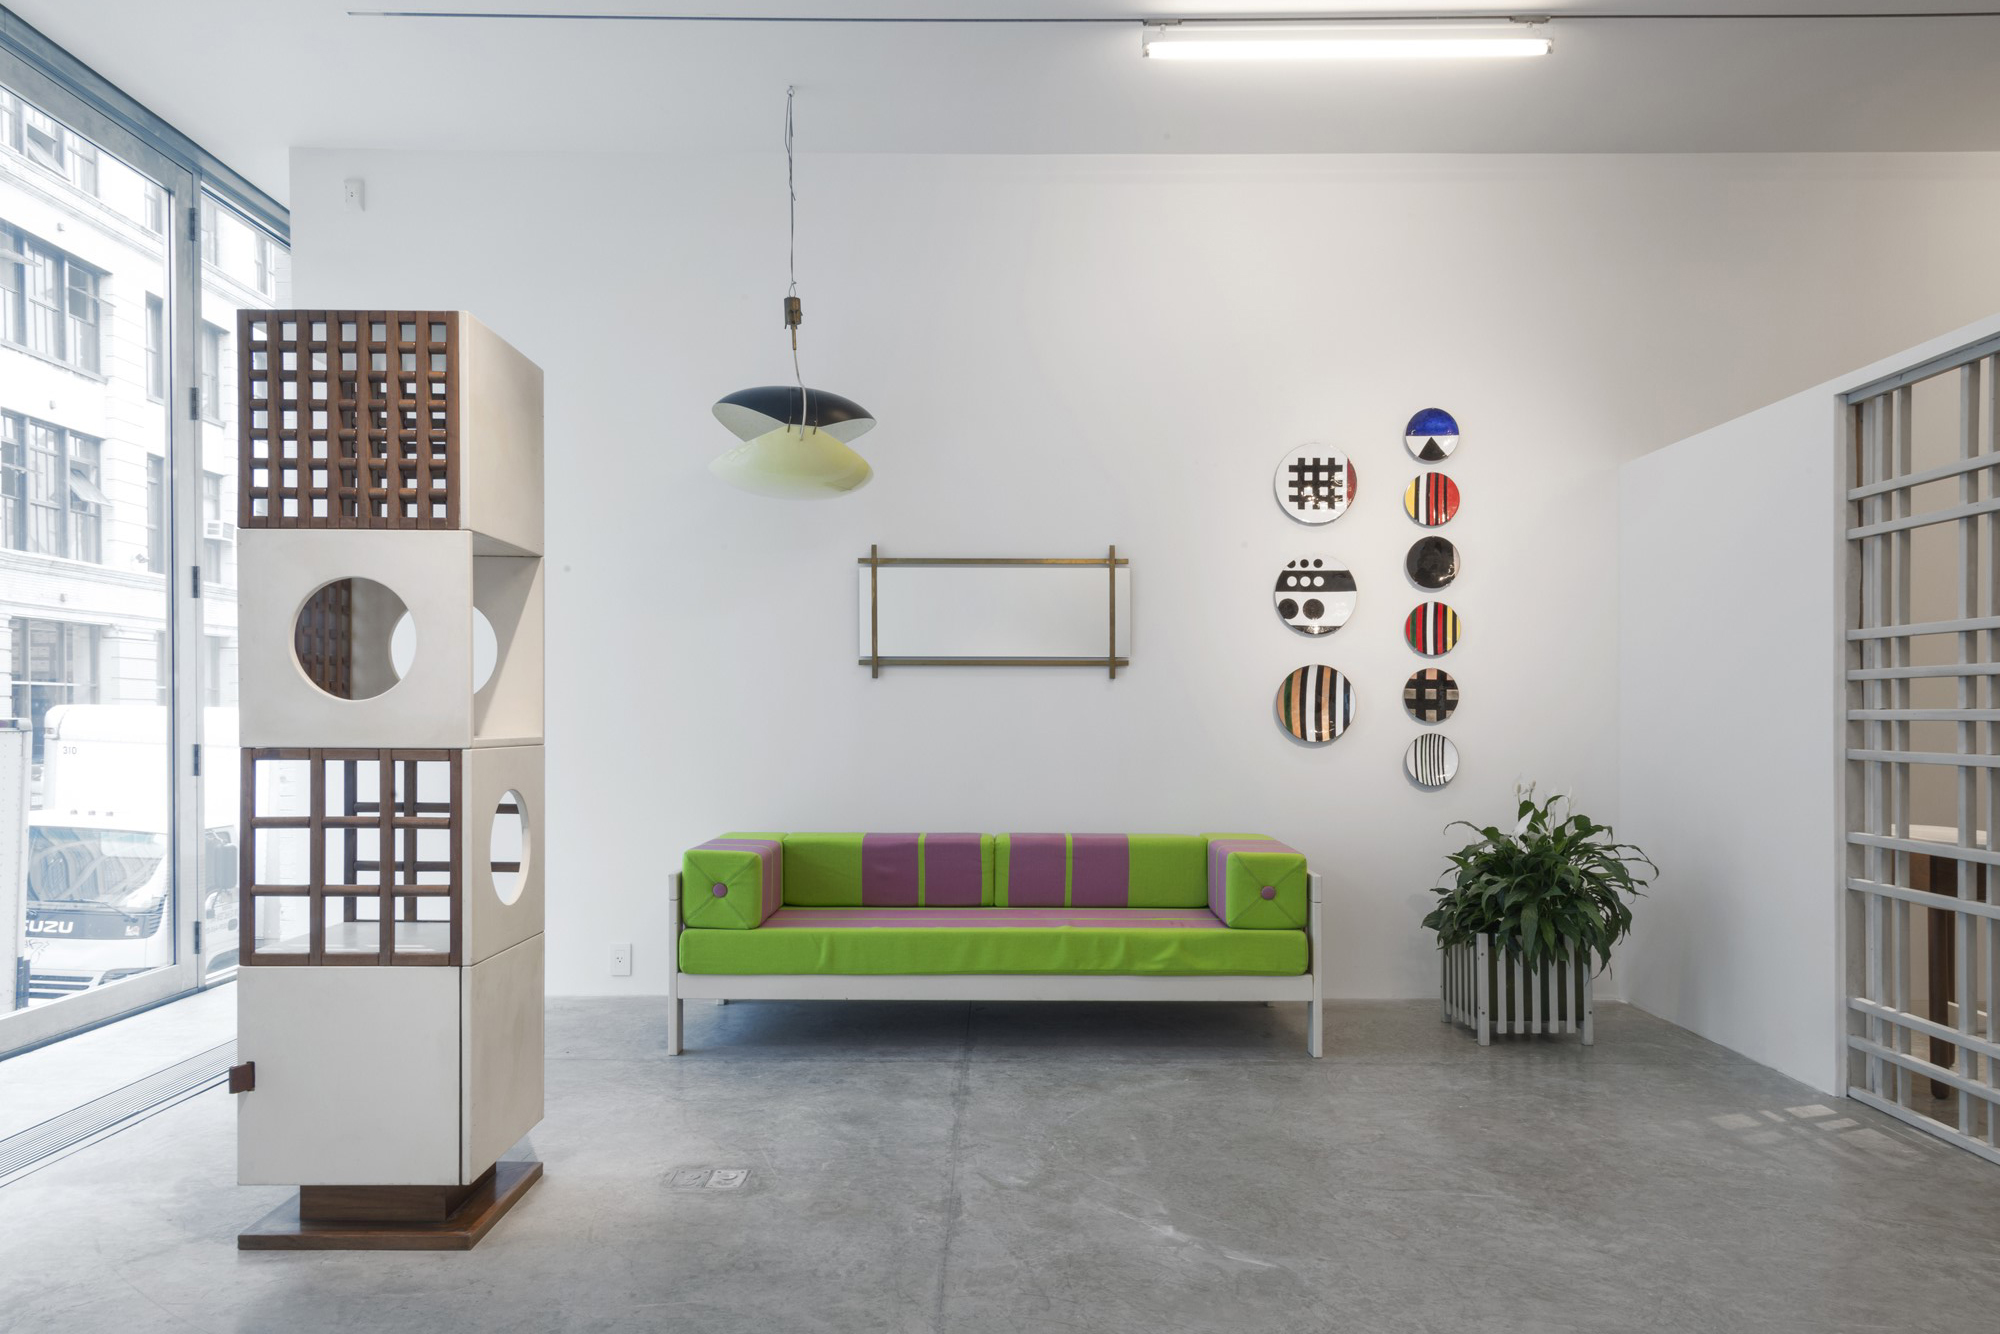 Early Work From Ettore Sottsass On Display At Friedman